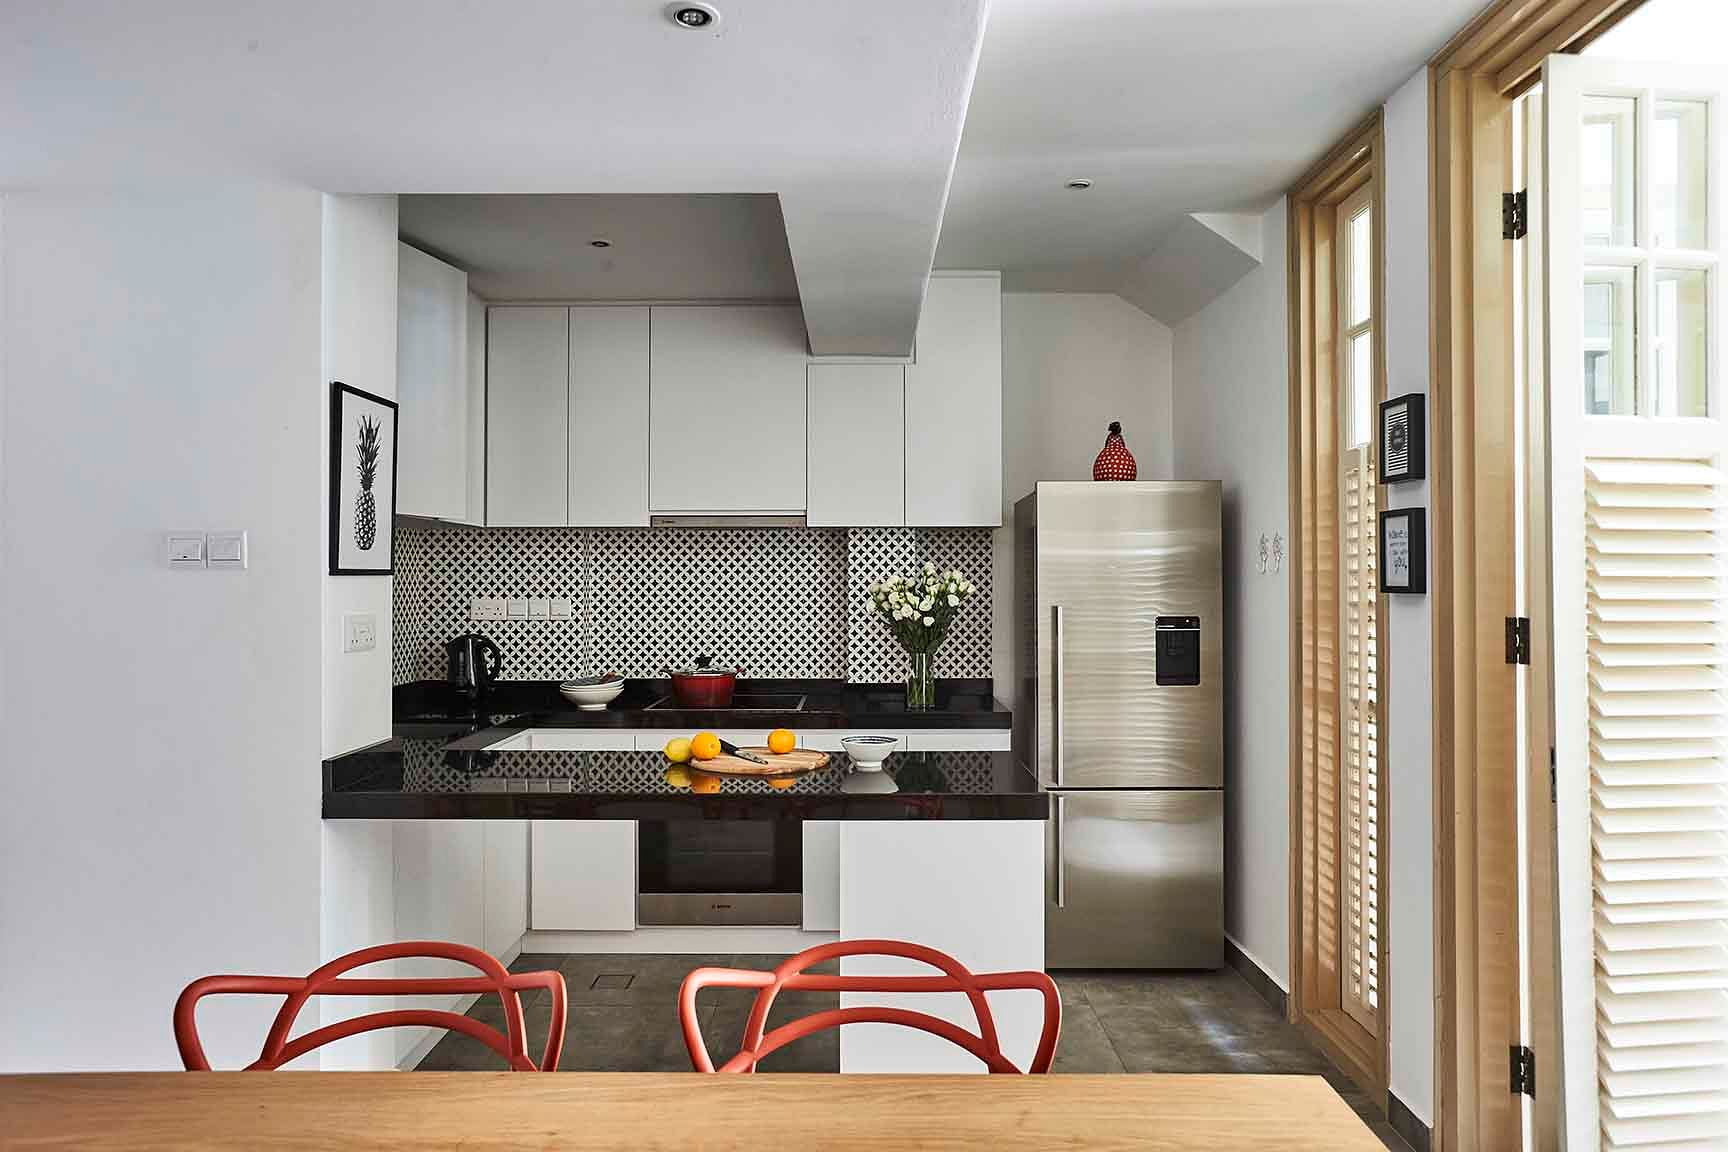 House Tour: A modern take on this pre-war conservation terrace house title=